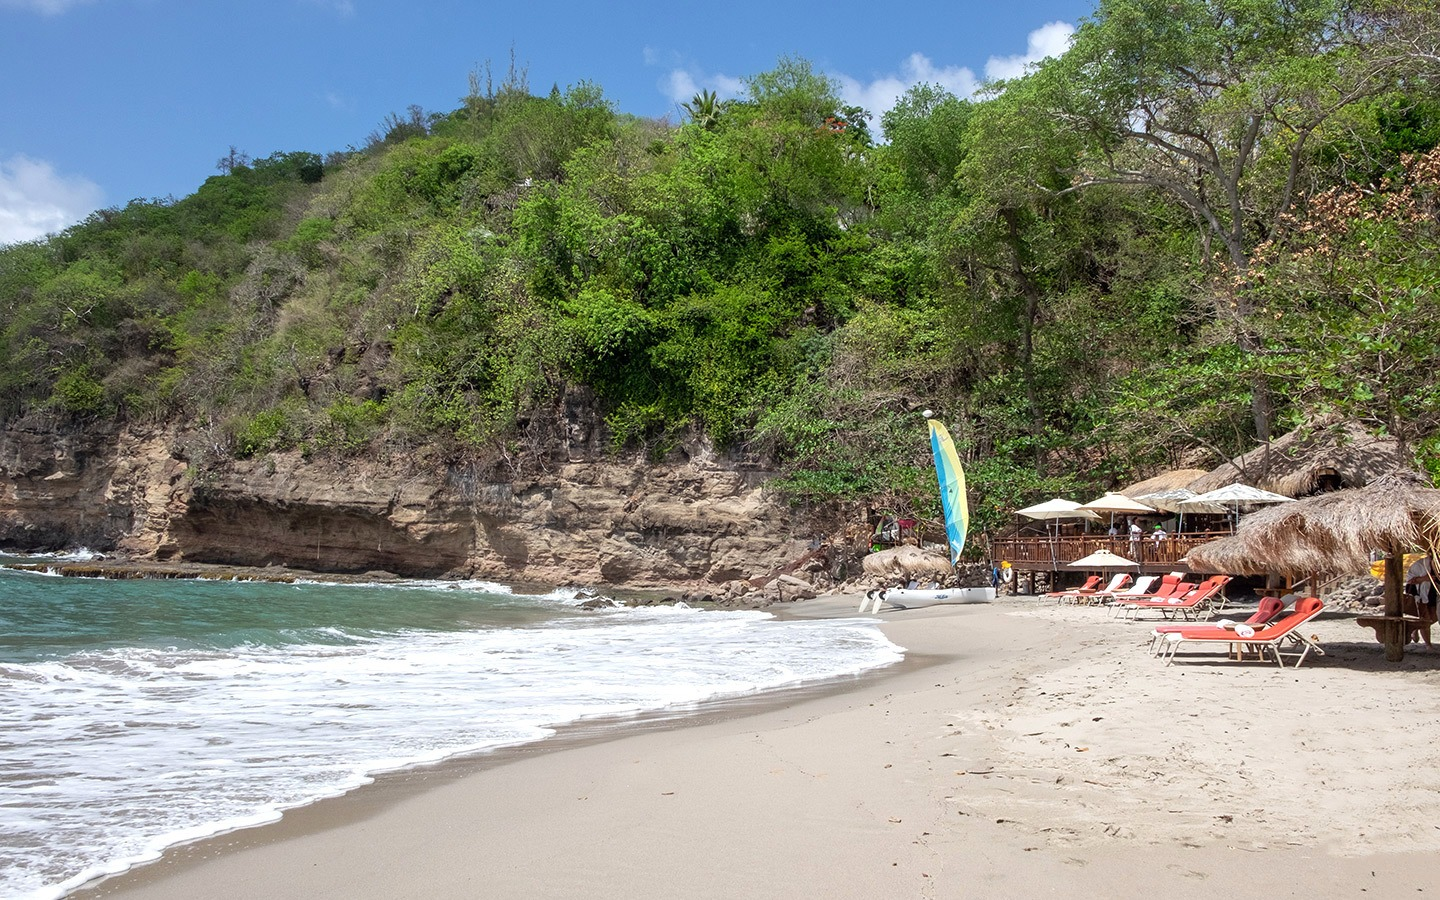 Smugglers Cove beach at Cap Maison, Saint Lucia